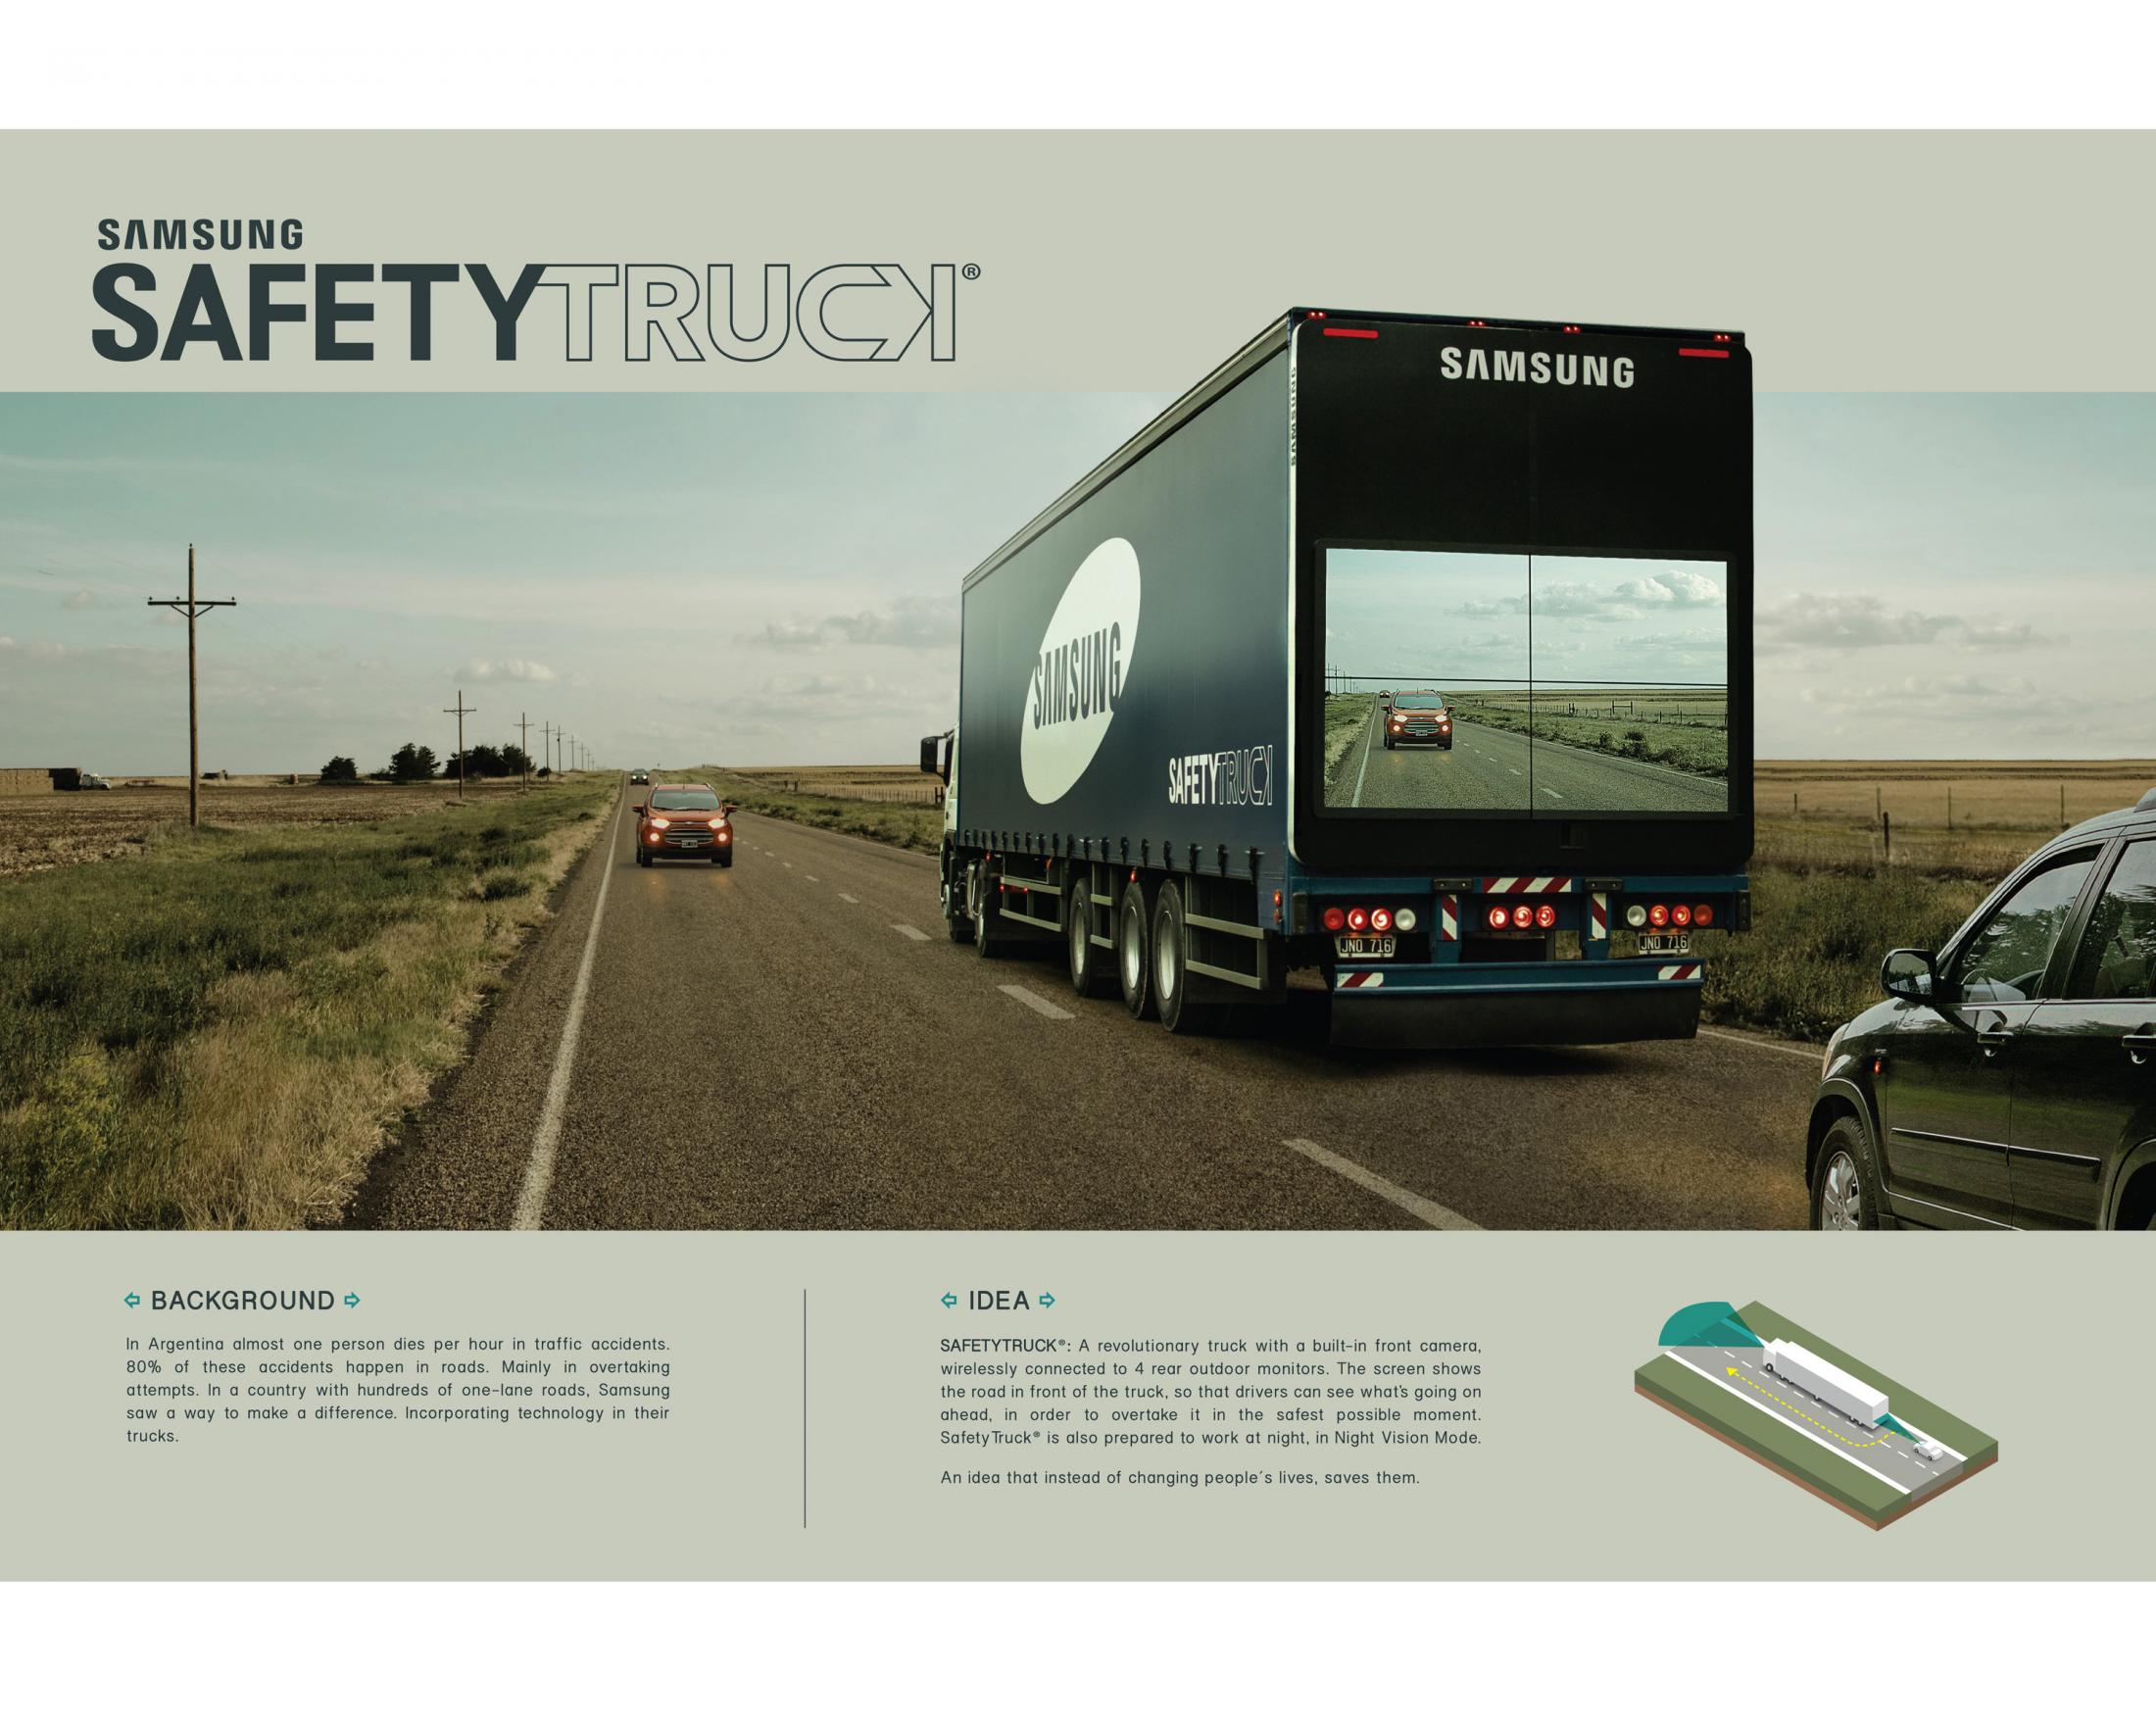 Thumbnail for Samsung SafetyTruck